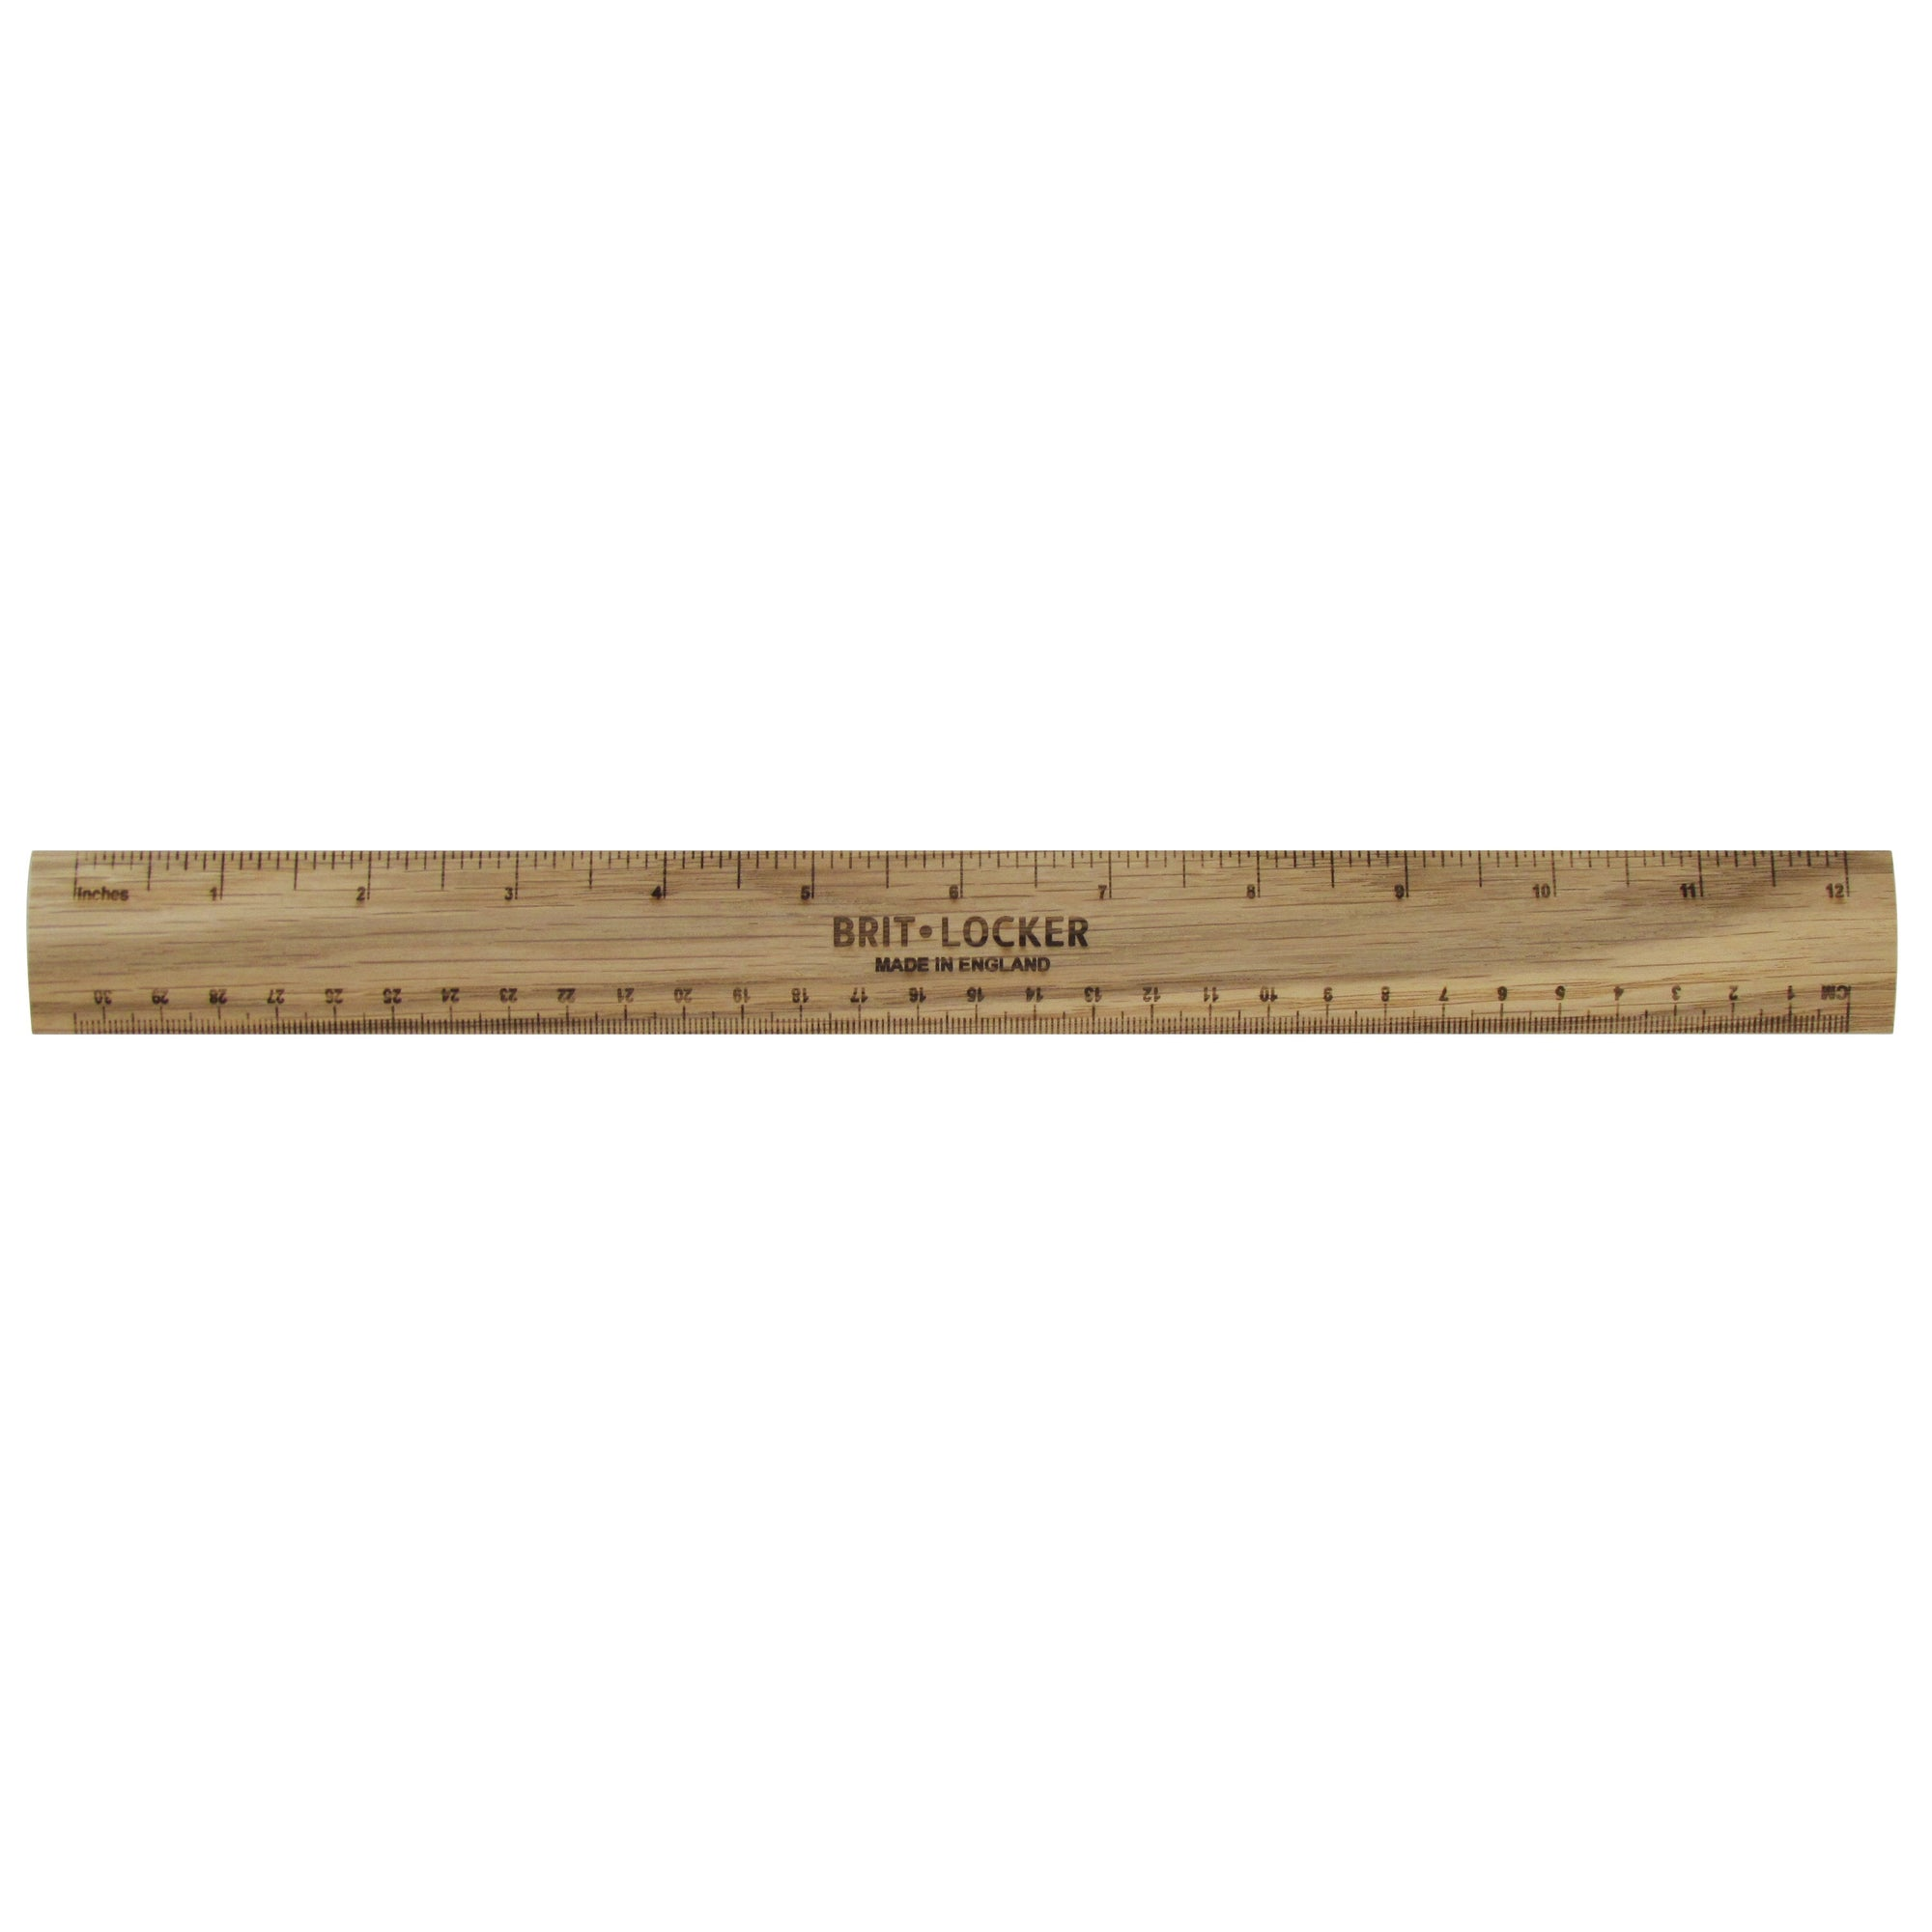 Wooden Oak Ruler - Made in Britain - BRIT LOCKER